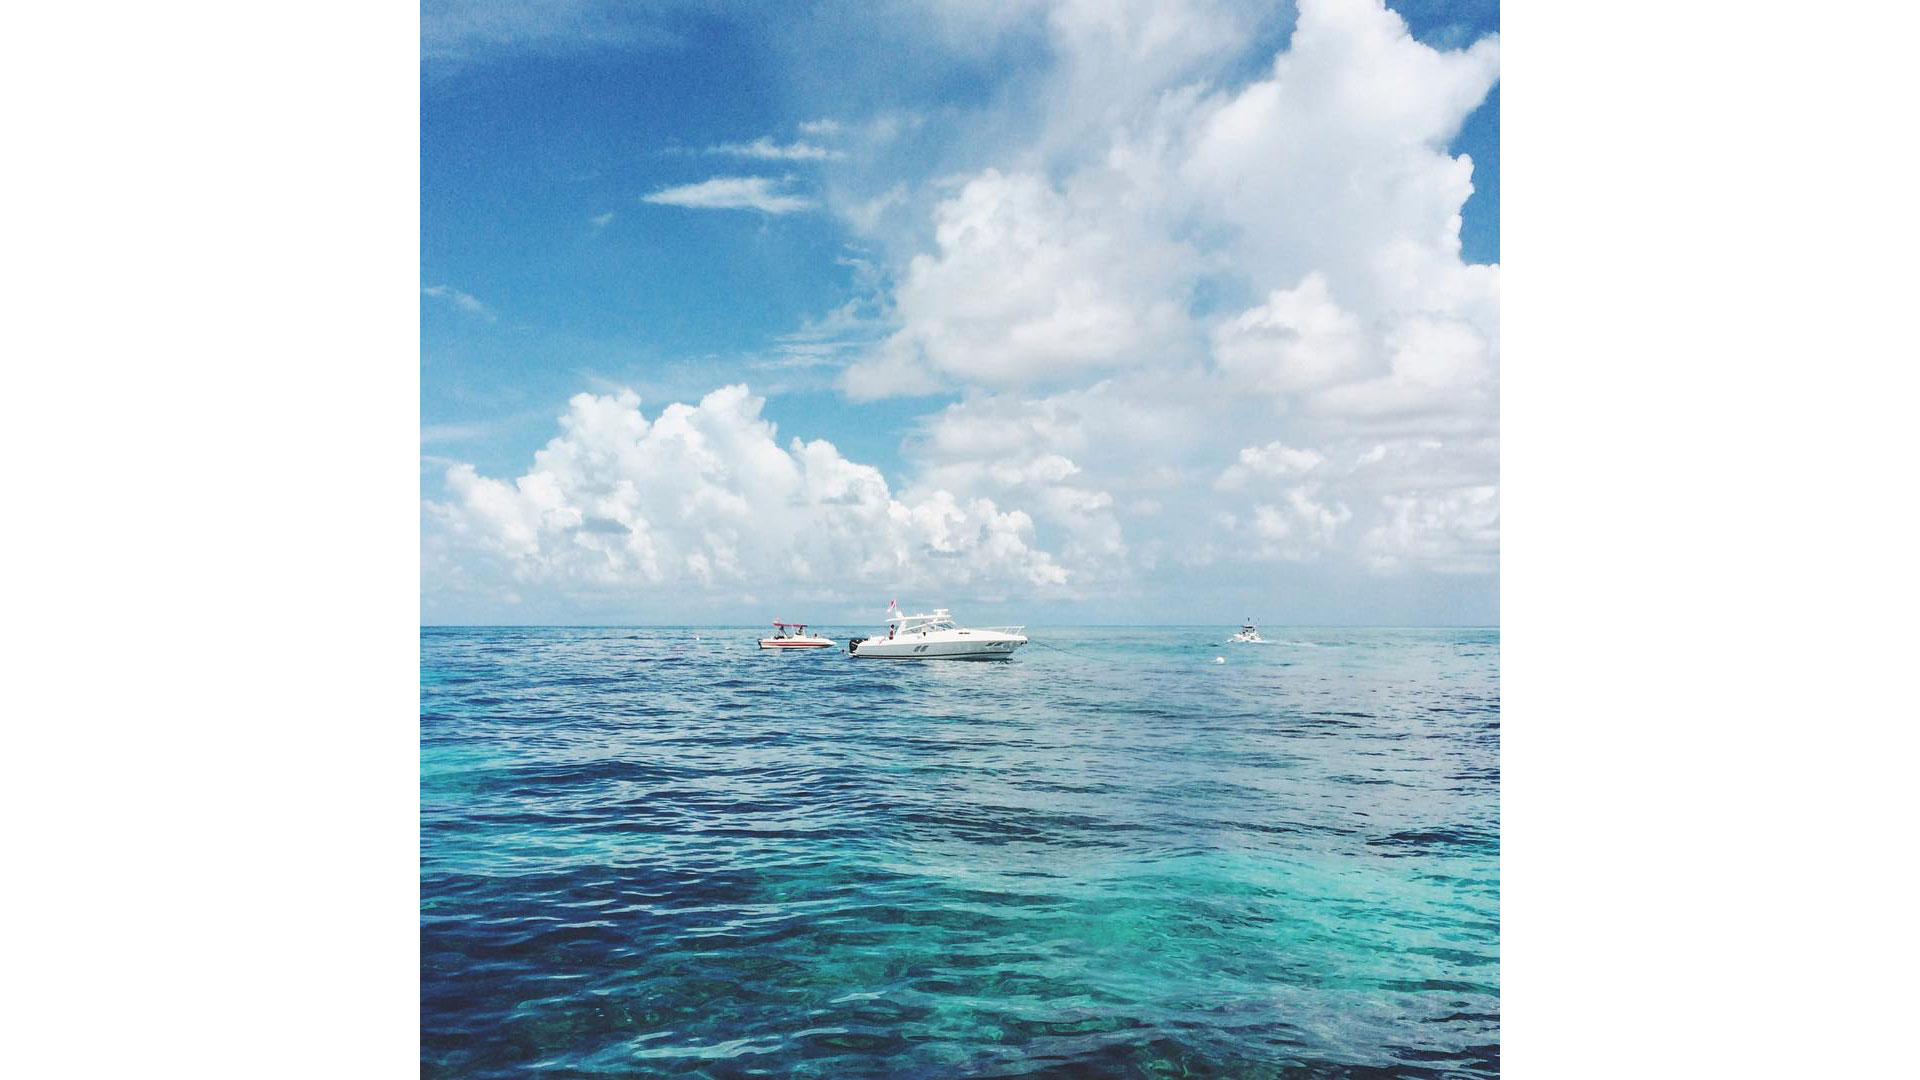 Hop on a boat to Coffins Patch, four nautical miles off Key Colony Beach, for some of the best snorkeling in the middle Keys. It's home to myriad tropical fish, coral, and marine animals, and it's where the Spanish ship Ignacio sunk in the 18th century.